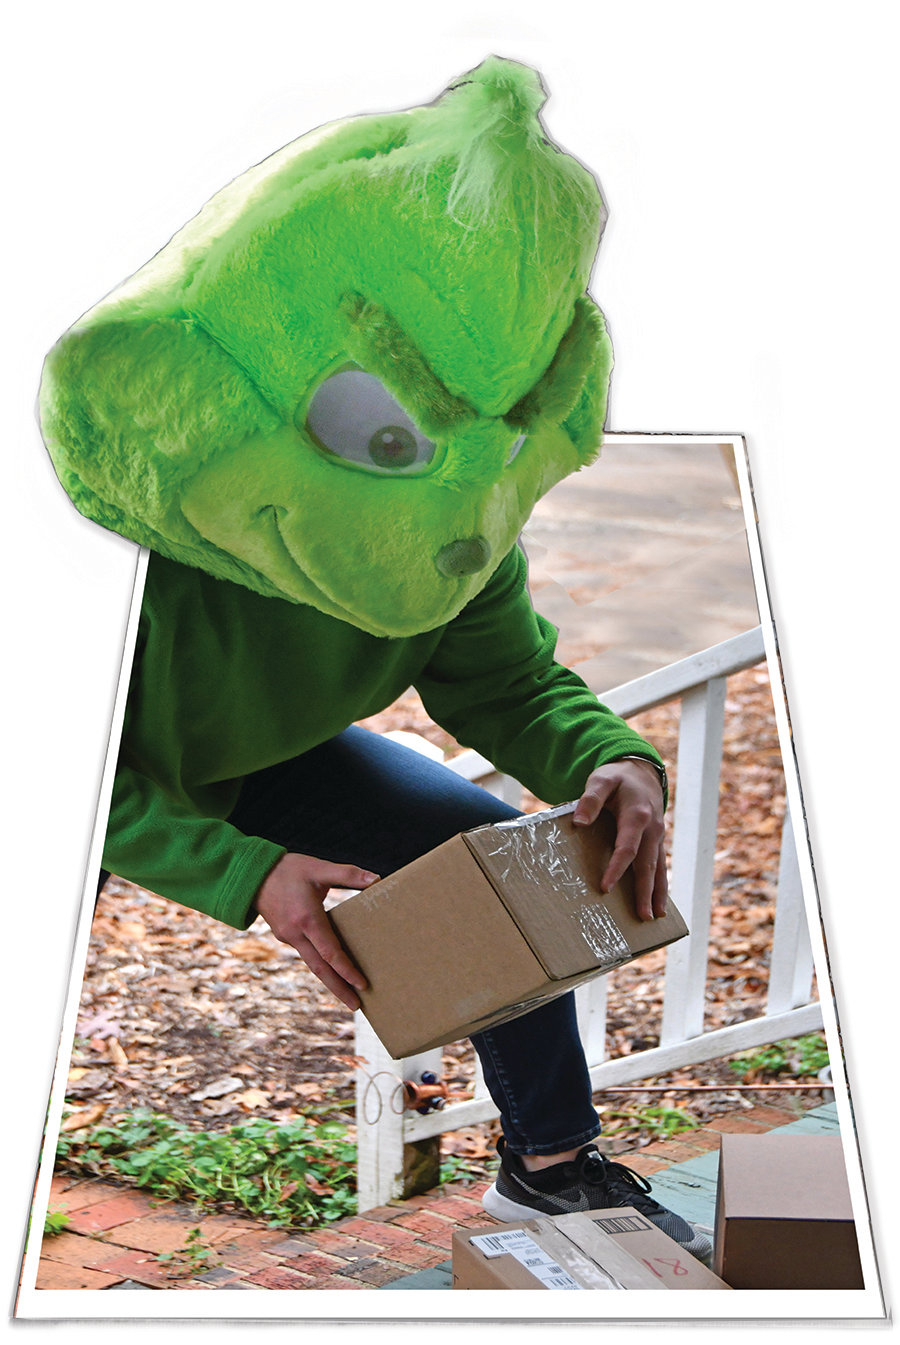 The 'Grinch' prepares to take several packages from a victim's front porch. 'Porch Pirates' with sticky fingers are out during the holiday season.